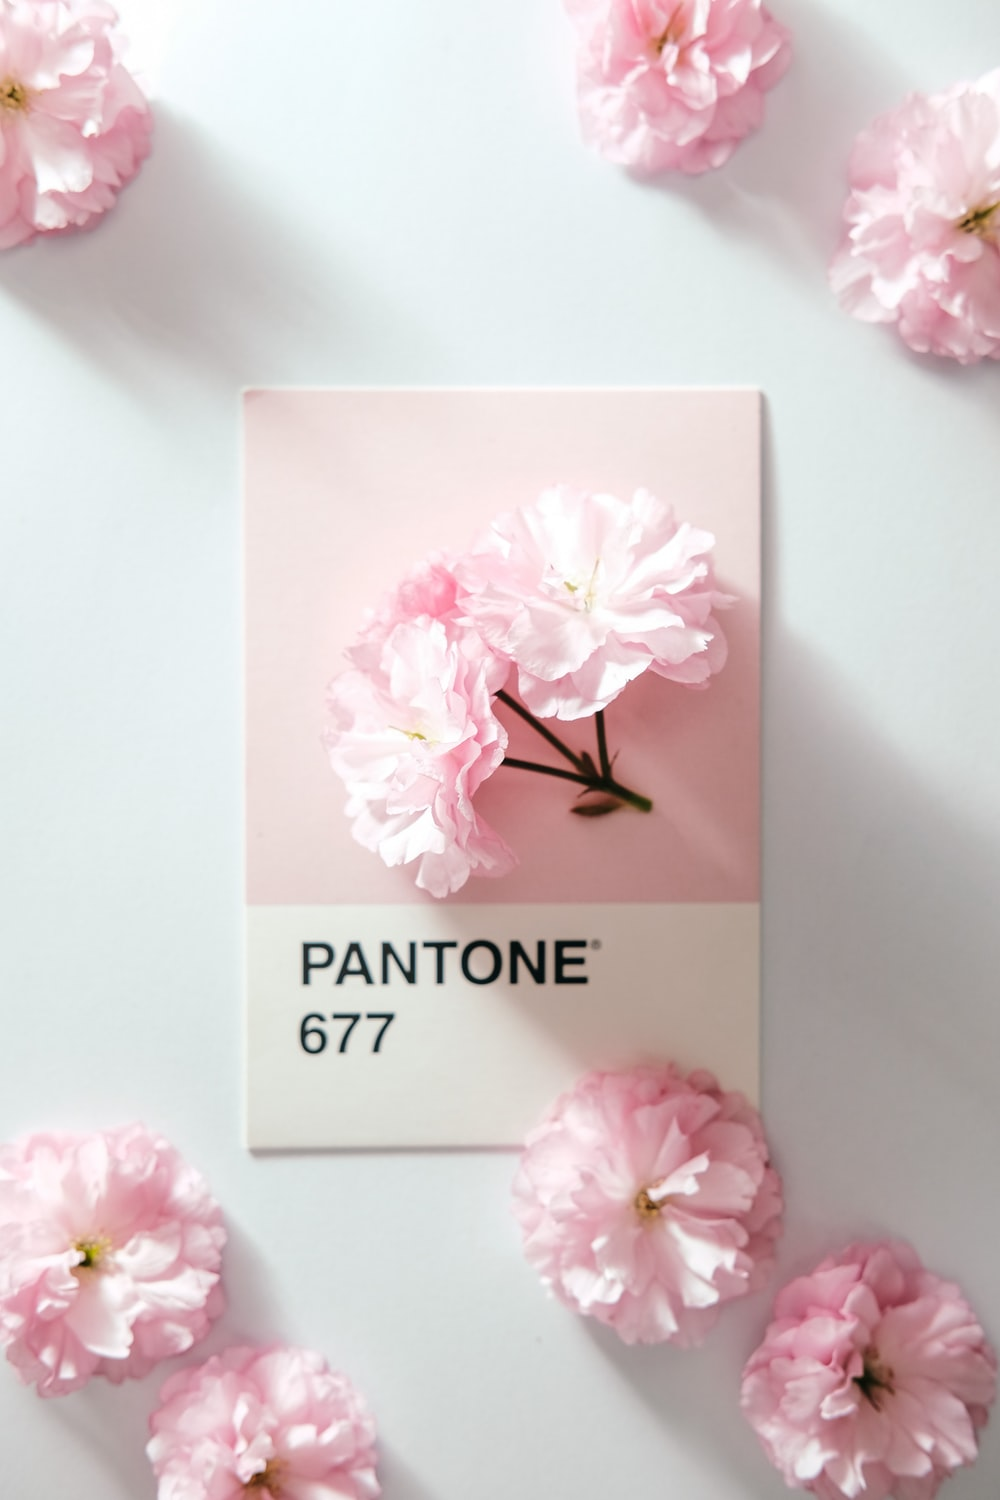 pink rose flower on white table